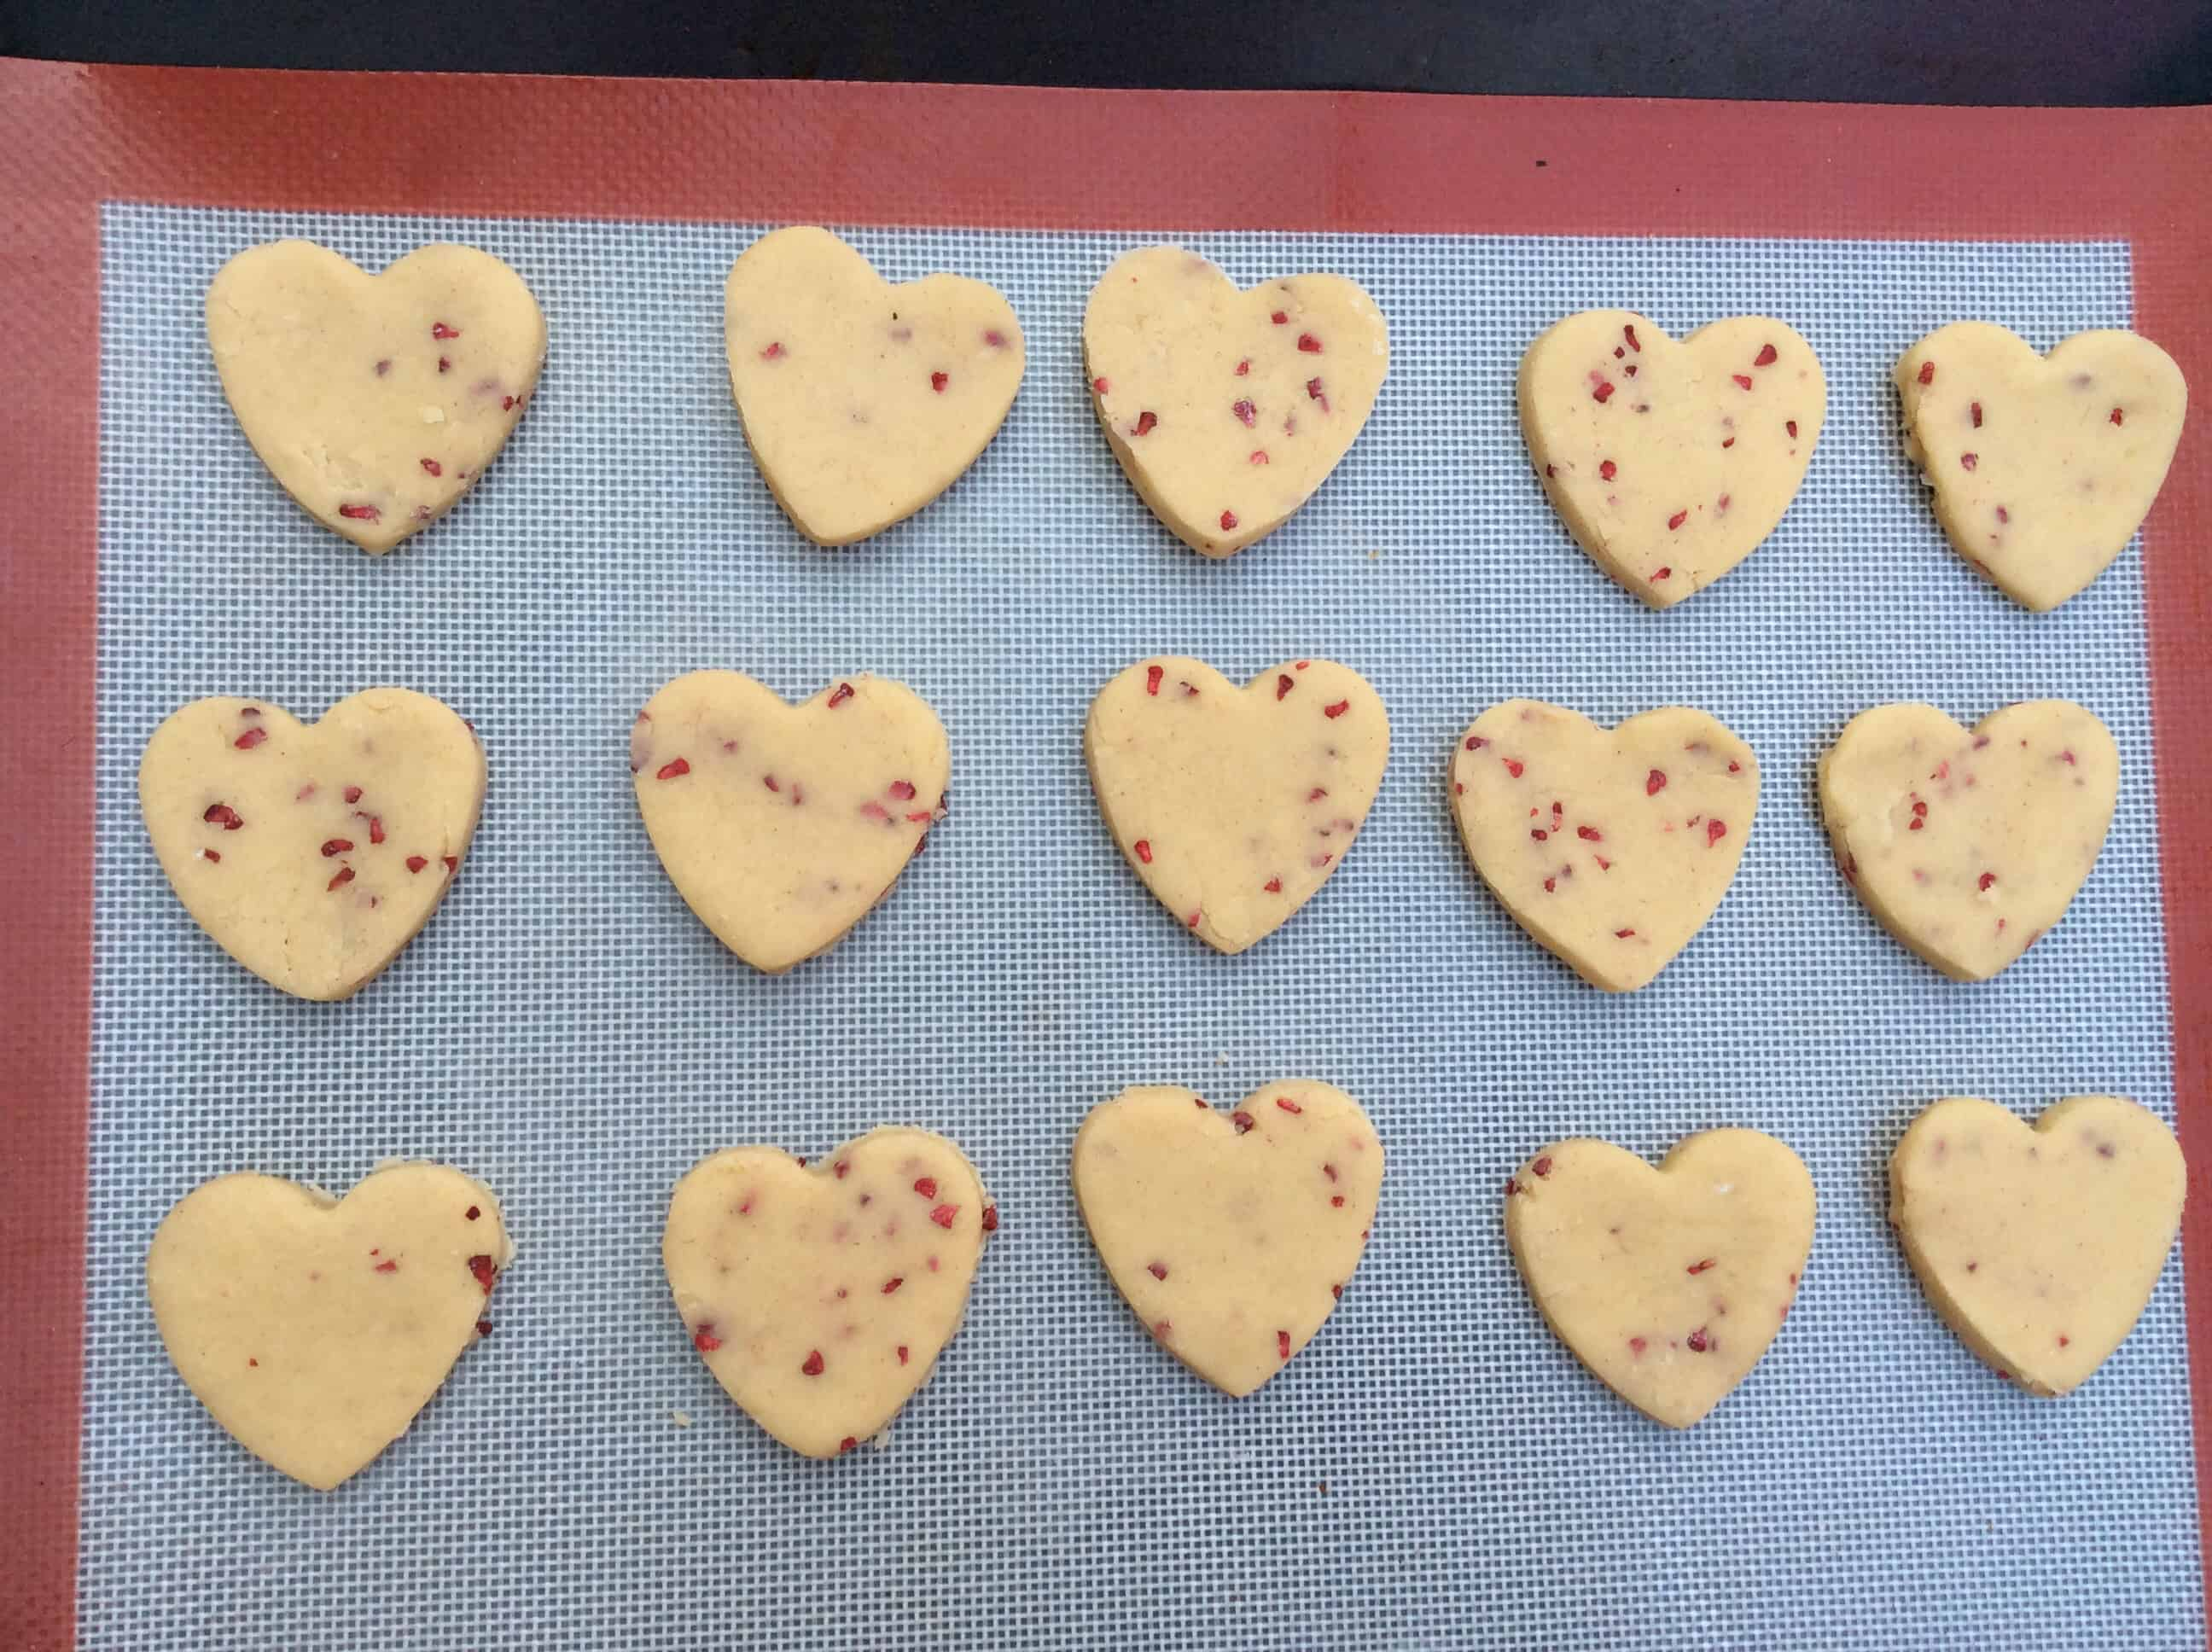 ... week we made these raspberry shortbread hearts for Valentines Day